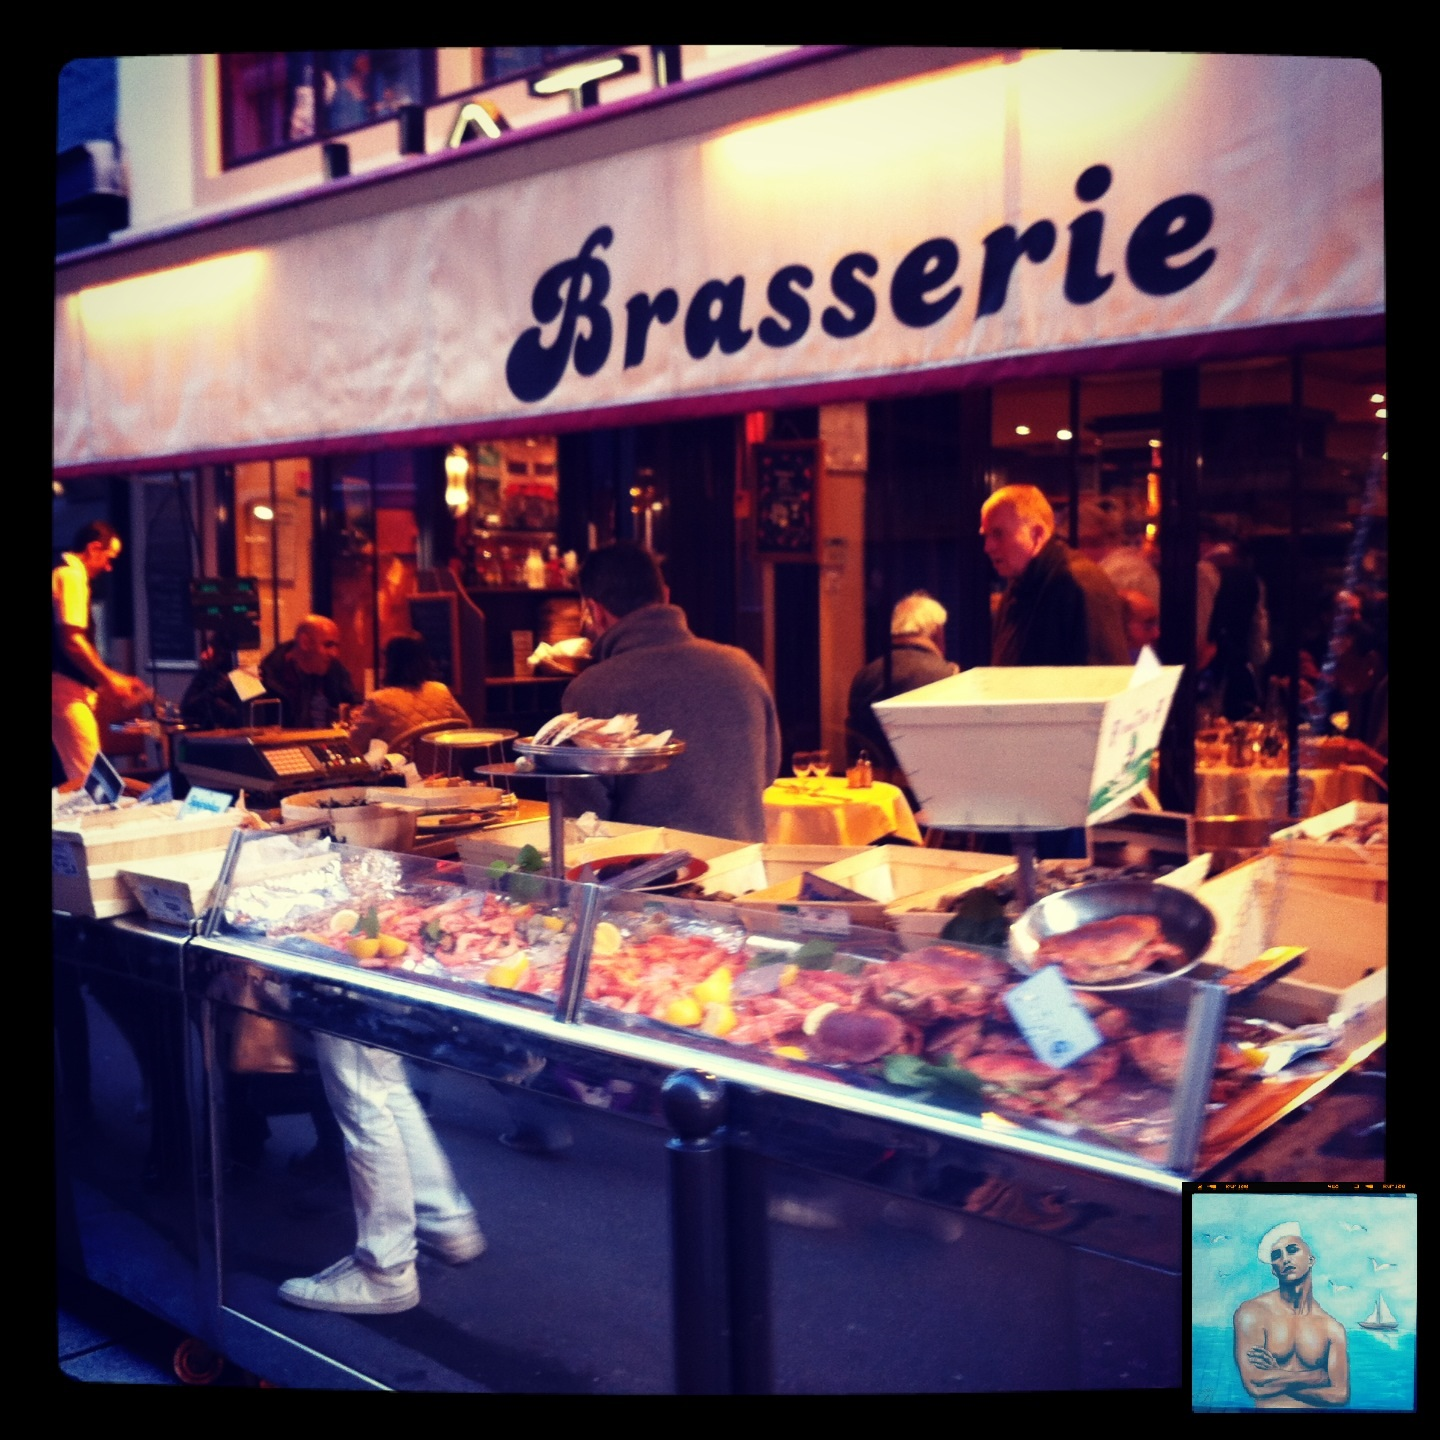 L'Atlas Brasserie proposant des fruits de mer à Paris @escaledenuit